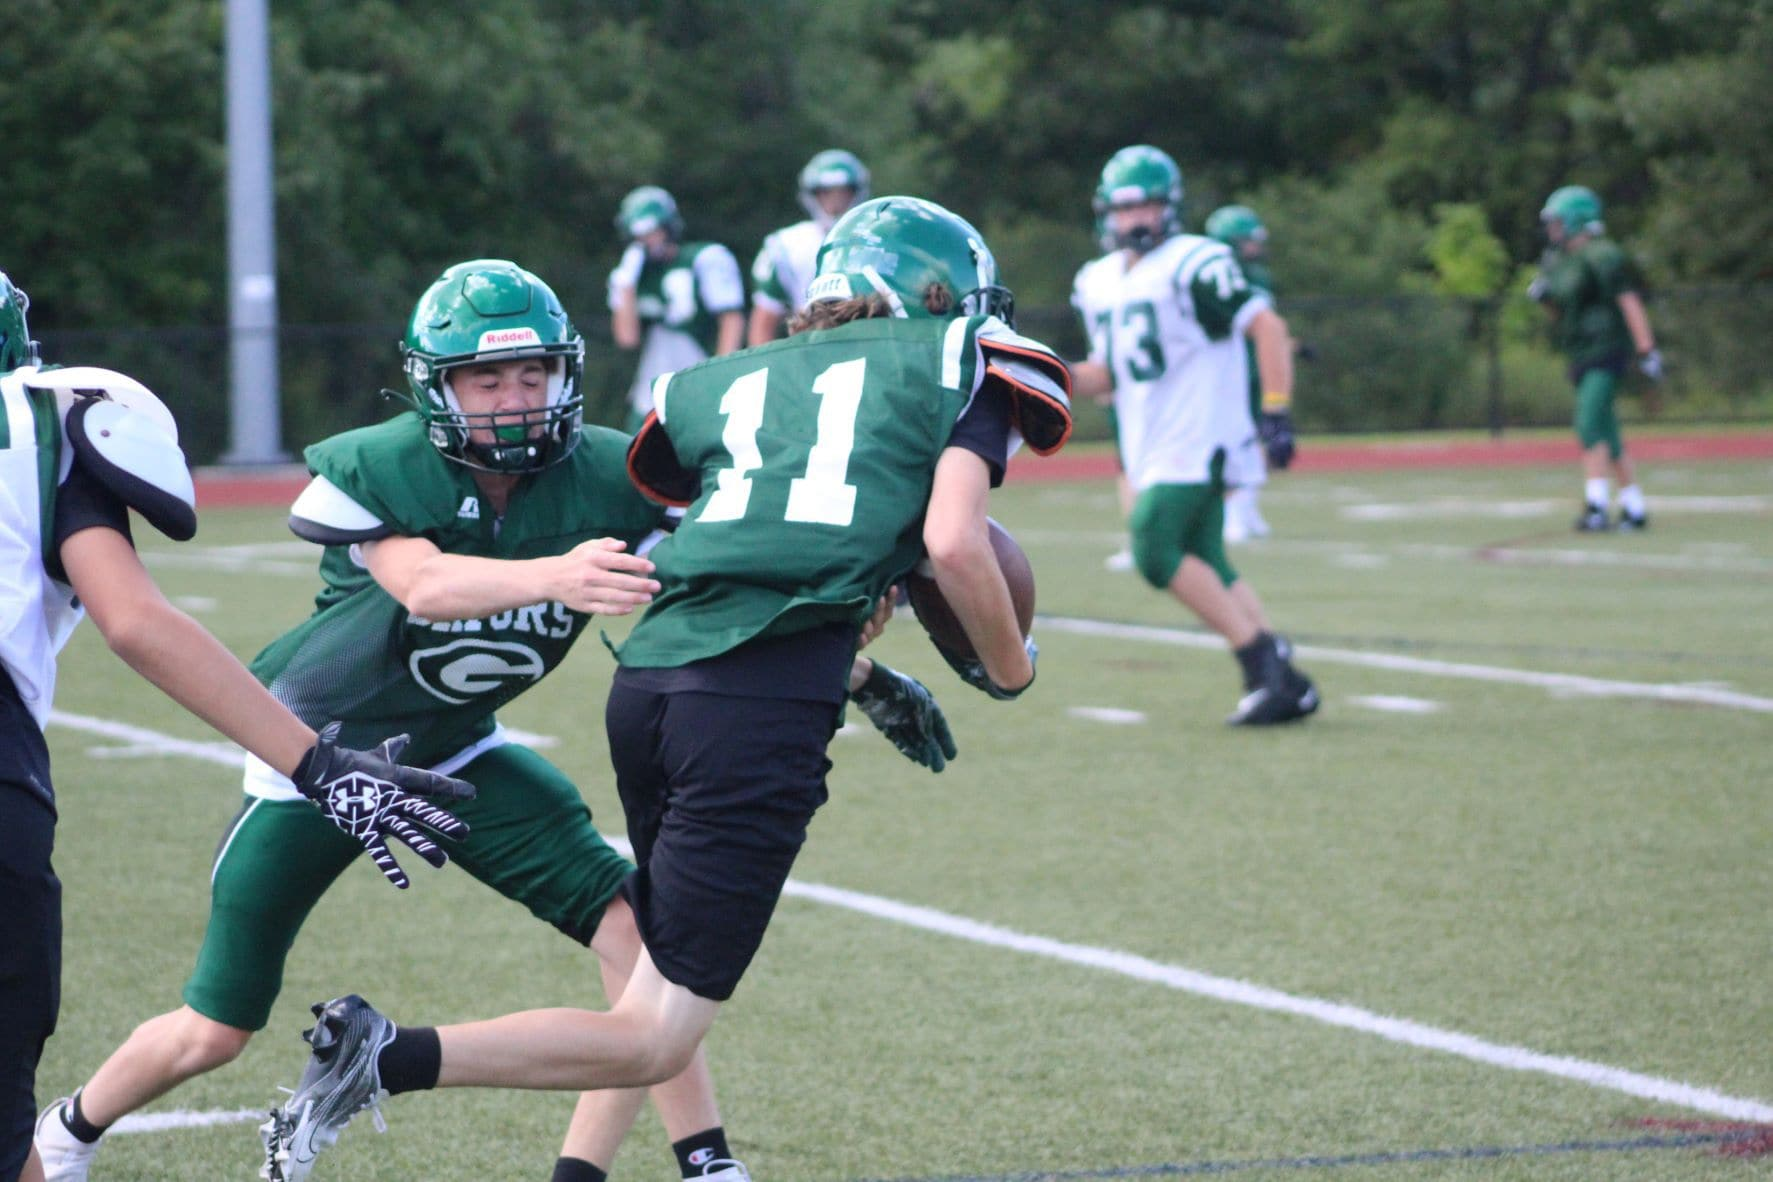 A Grafton player lunges for a tackle.